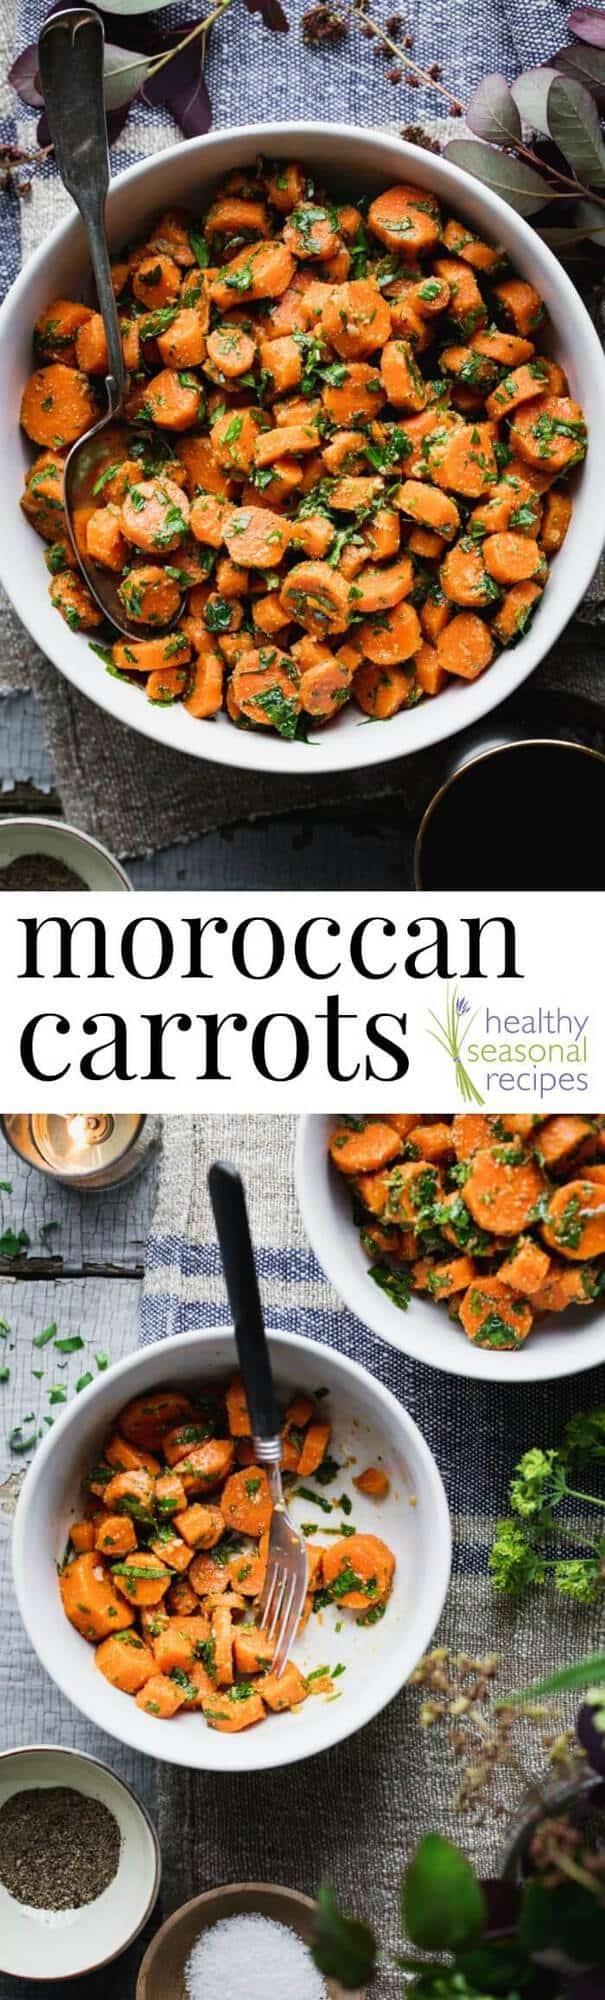 A bowl filled with different types of food, with Moroccan Carrots